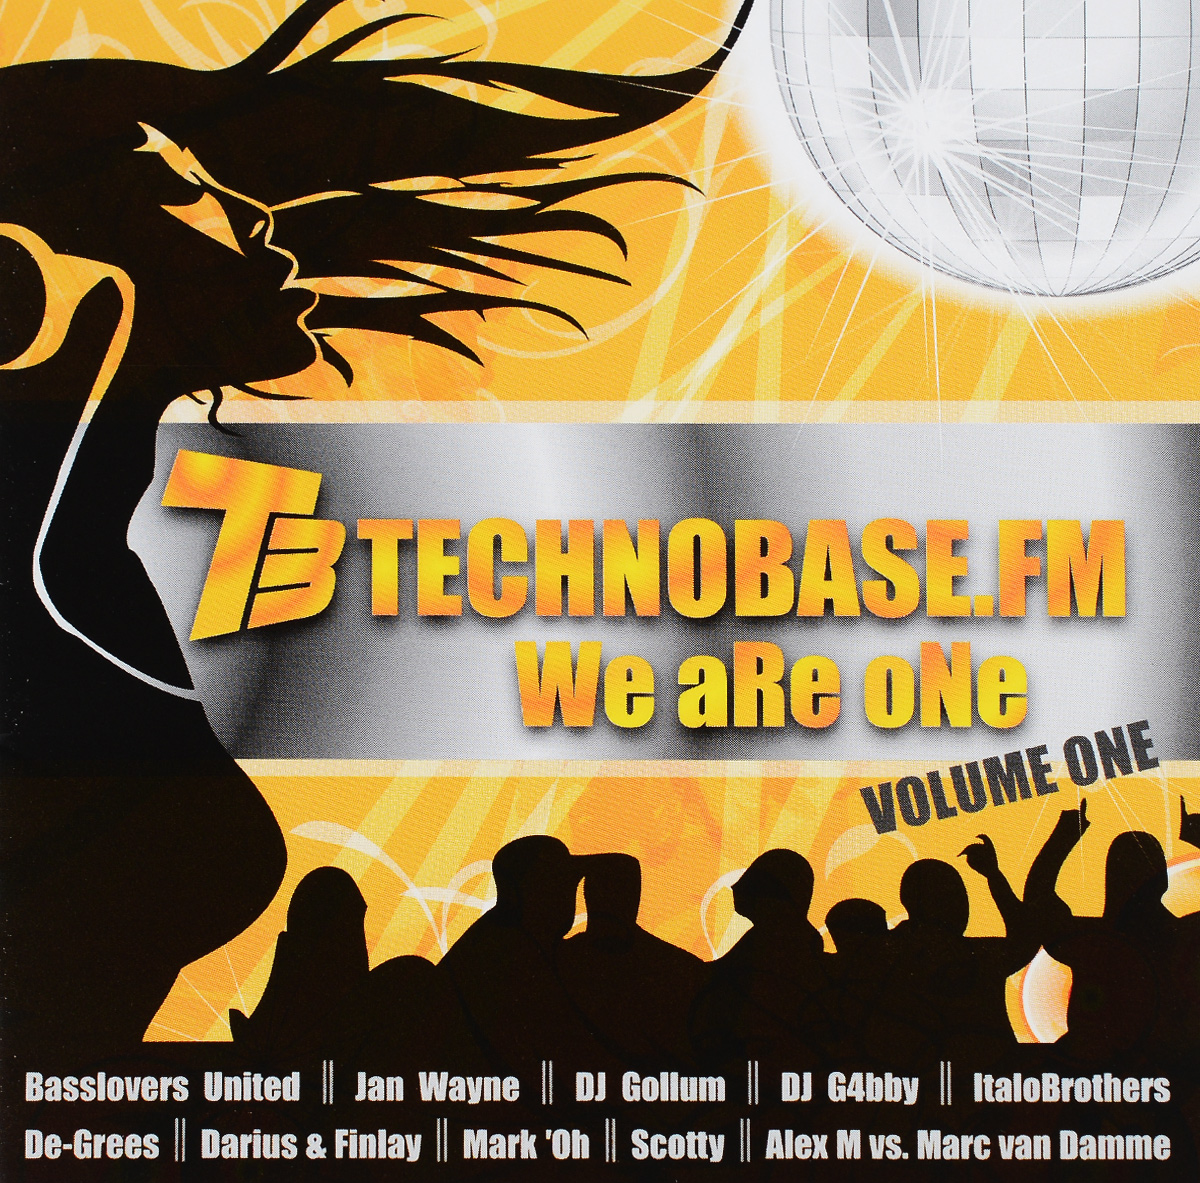 DJ G4bby,Ян Ване,De-Grees,Italobrothers,Dj Gollum,Dj Lanai,Ti-Mo,Dan Winter,Dj Somy,Lazy Monkeys Technobase.FM. We Are One. Volume 1 (2 CD) dj bobo köln